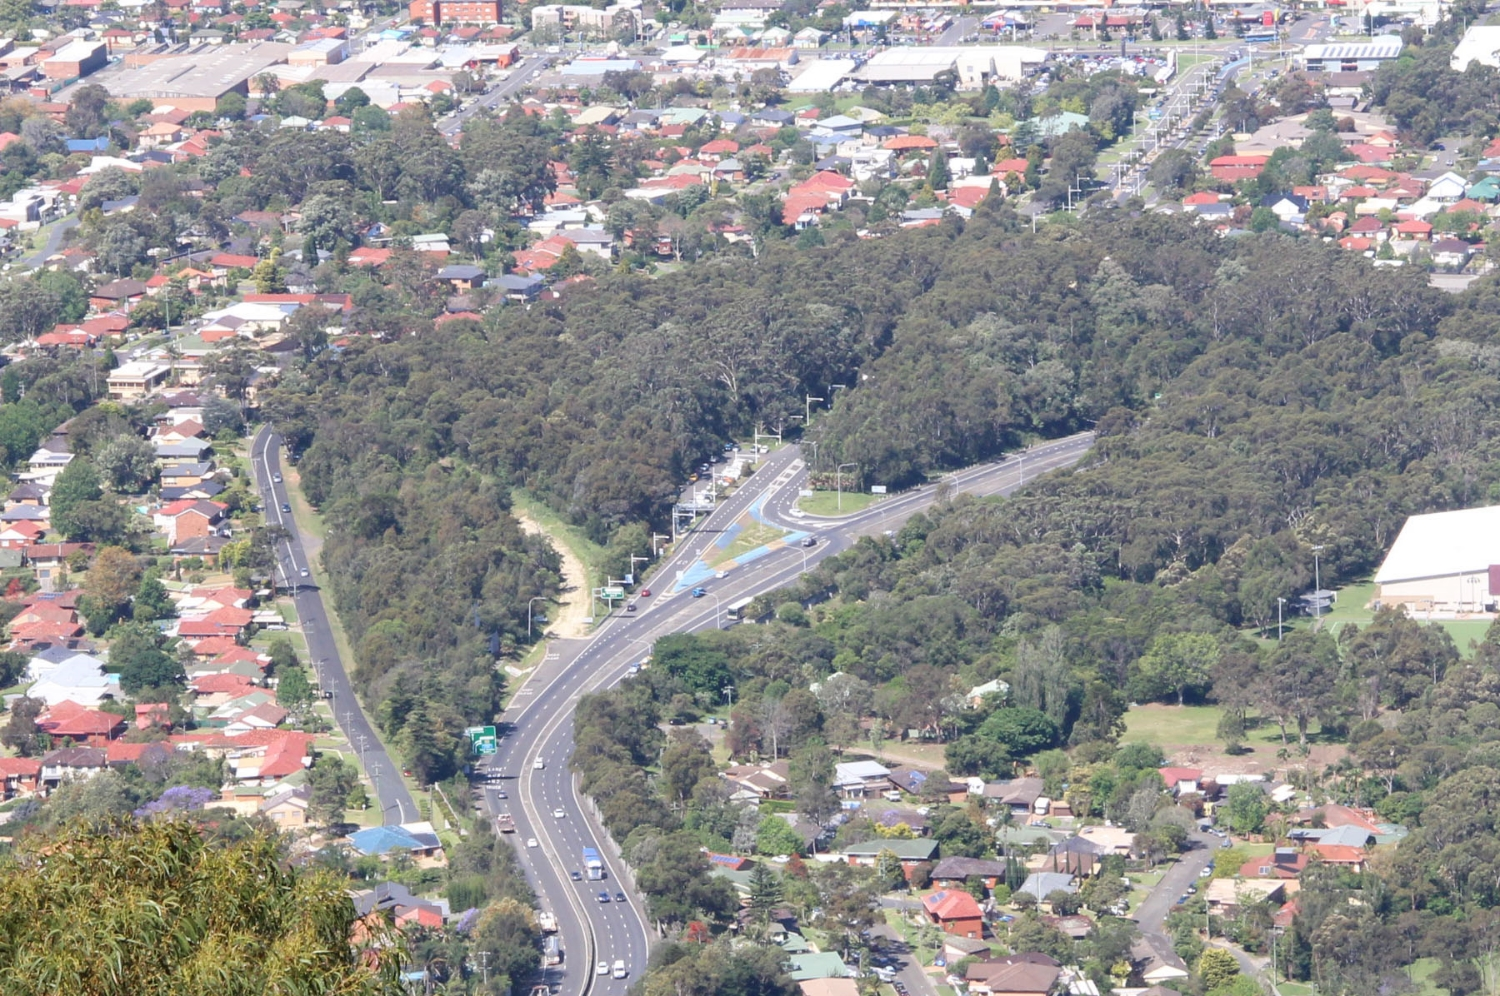 Mount Ousley - M1 Motorway - Proposed Interchange